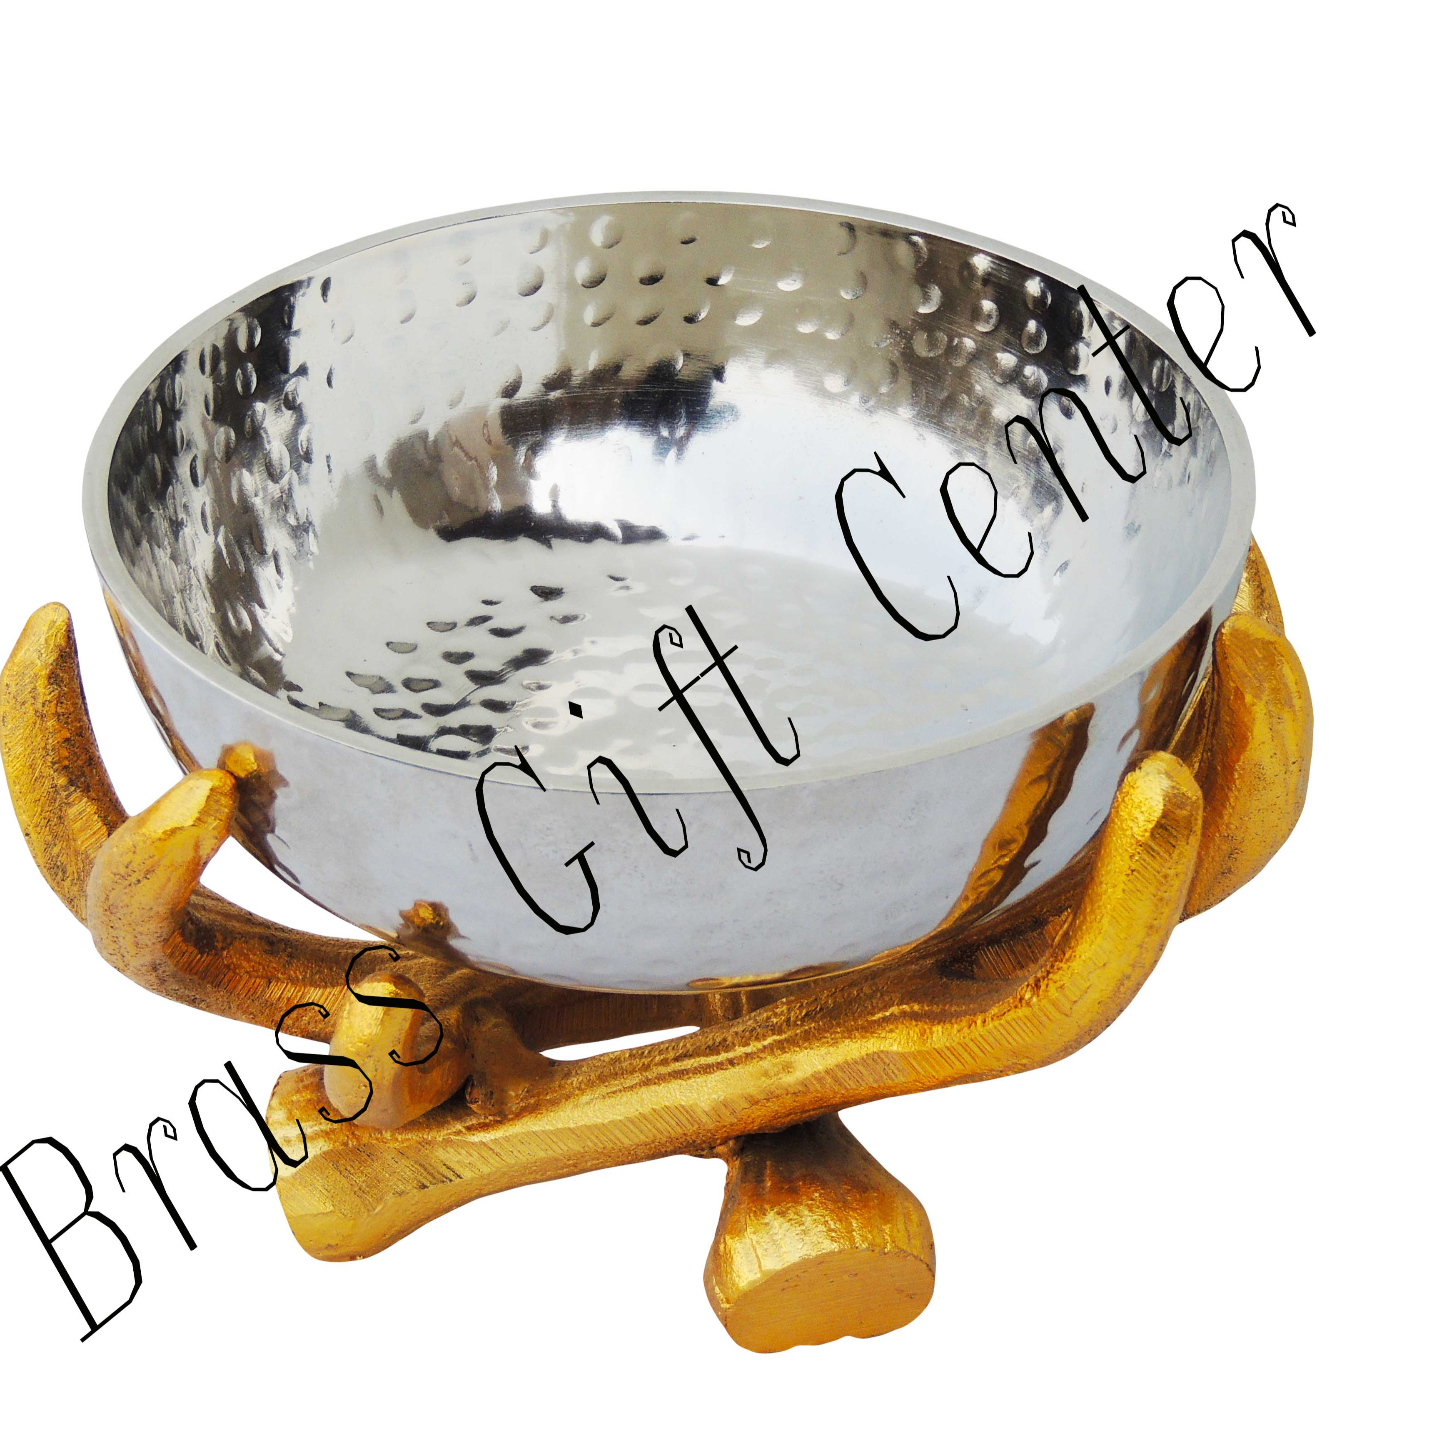 Aluminium  Bowlwith Stand In Gold And Nickel Finish -77 Inch  A31928